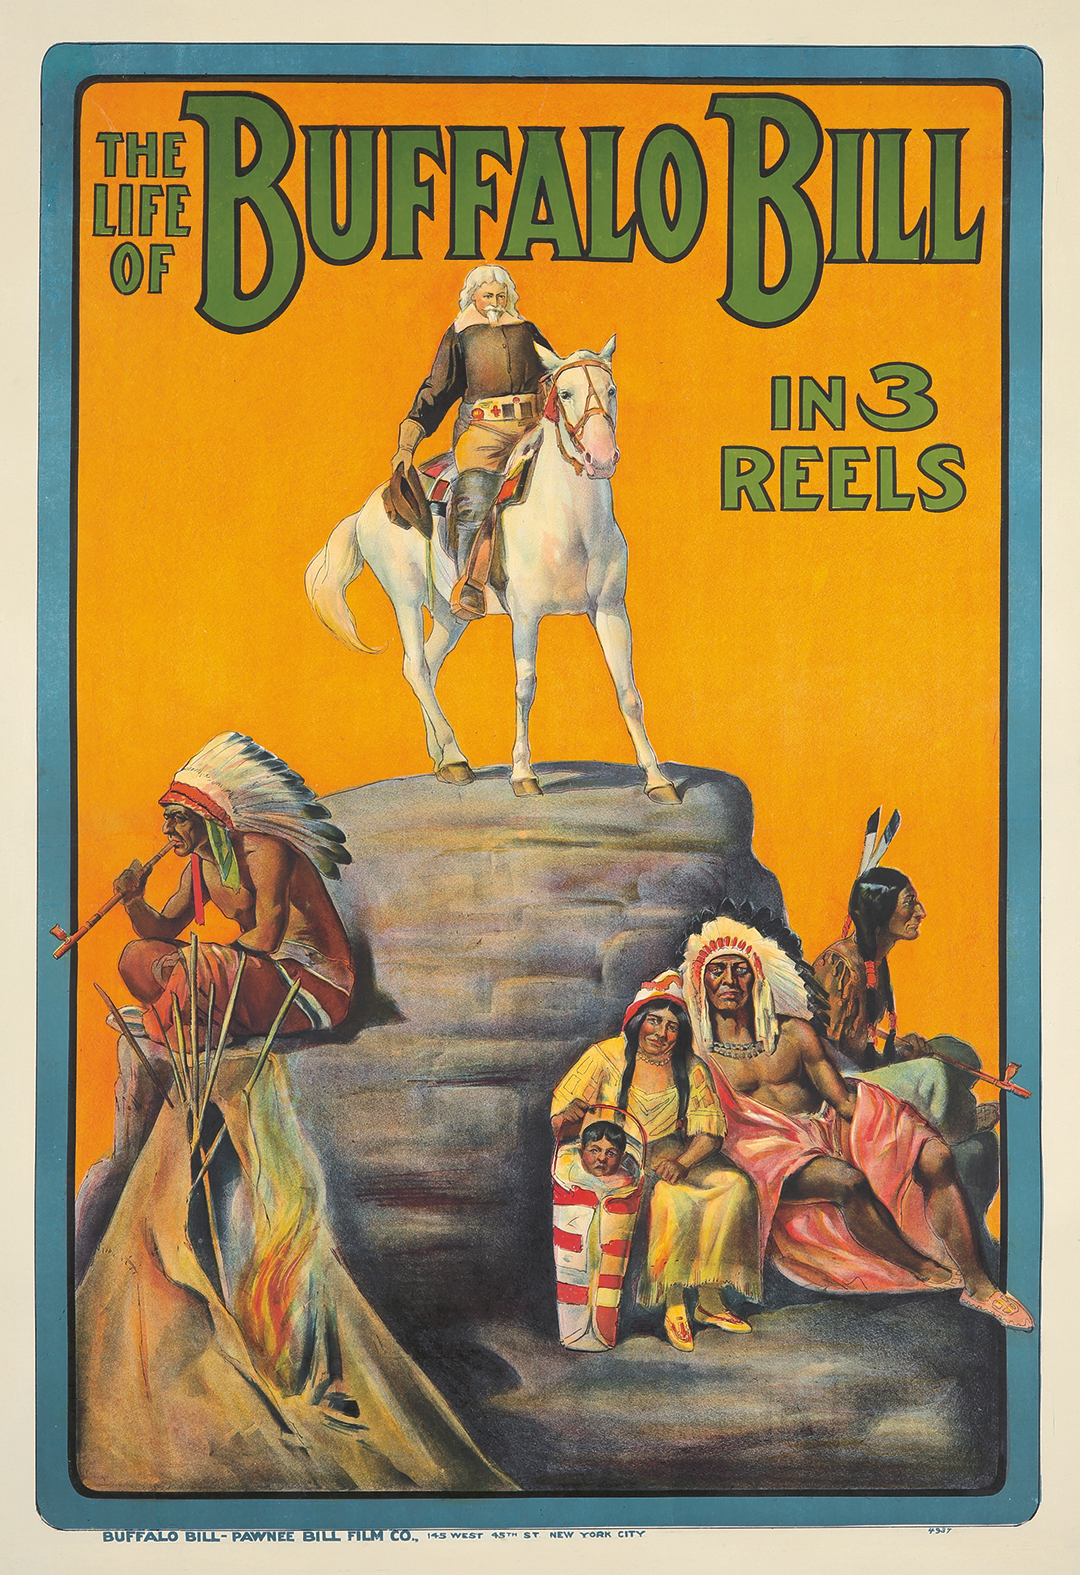 412. The Life of Buffalo Bill in 3 Reels. 1912.